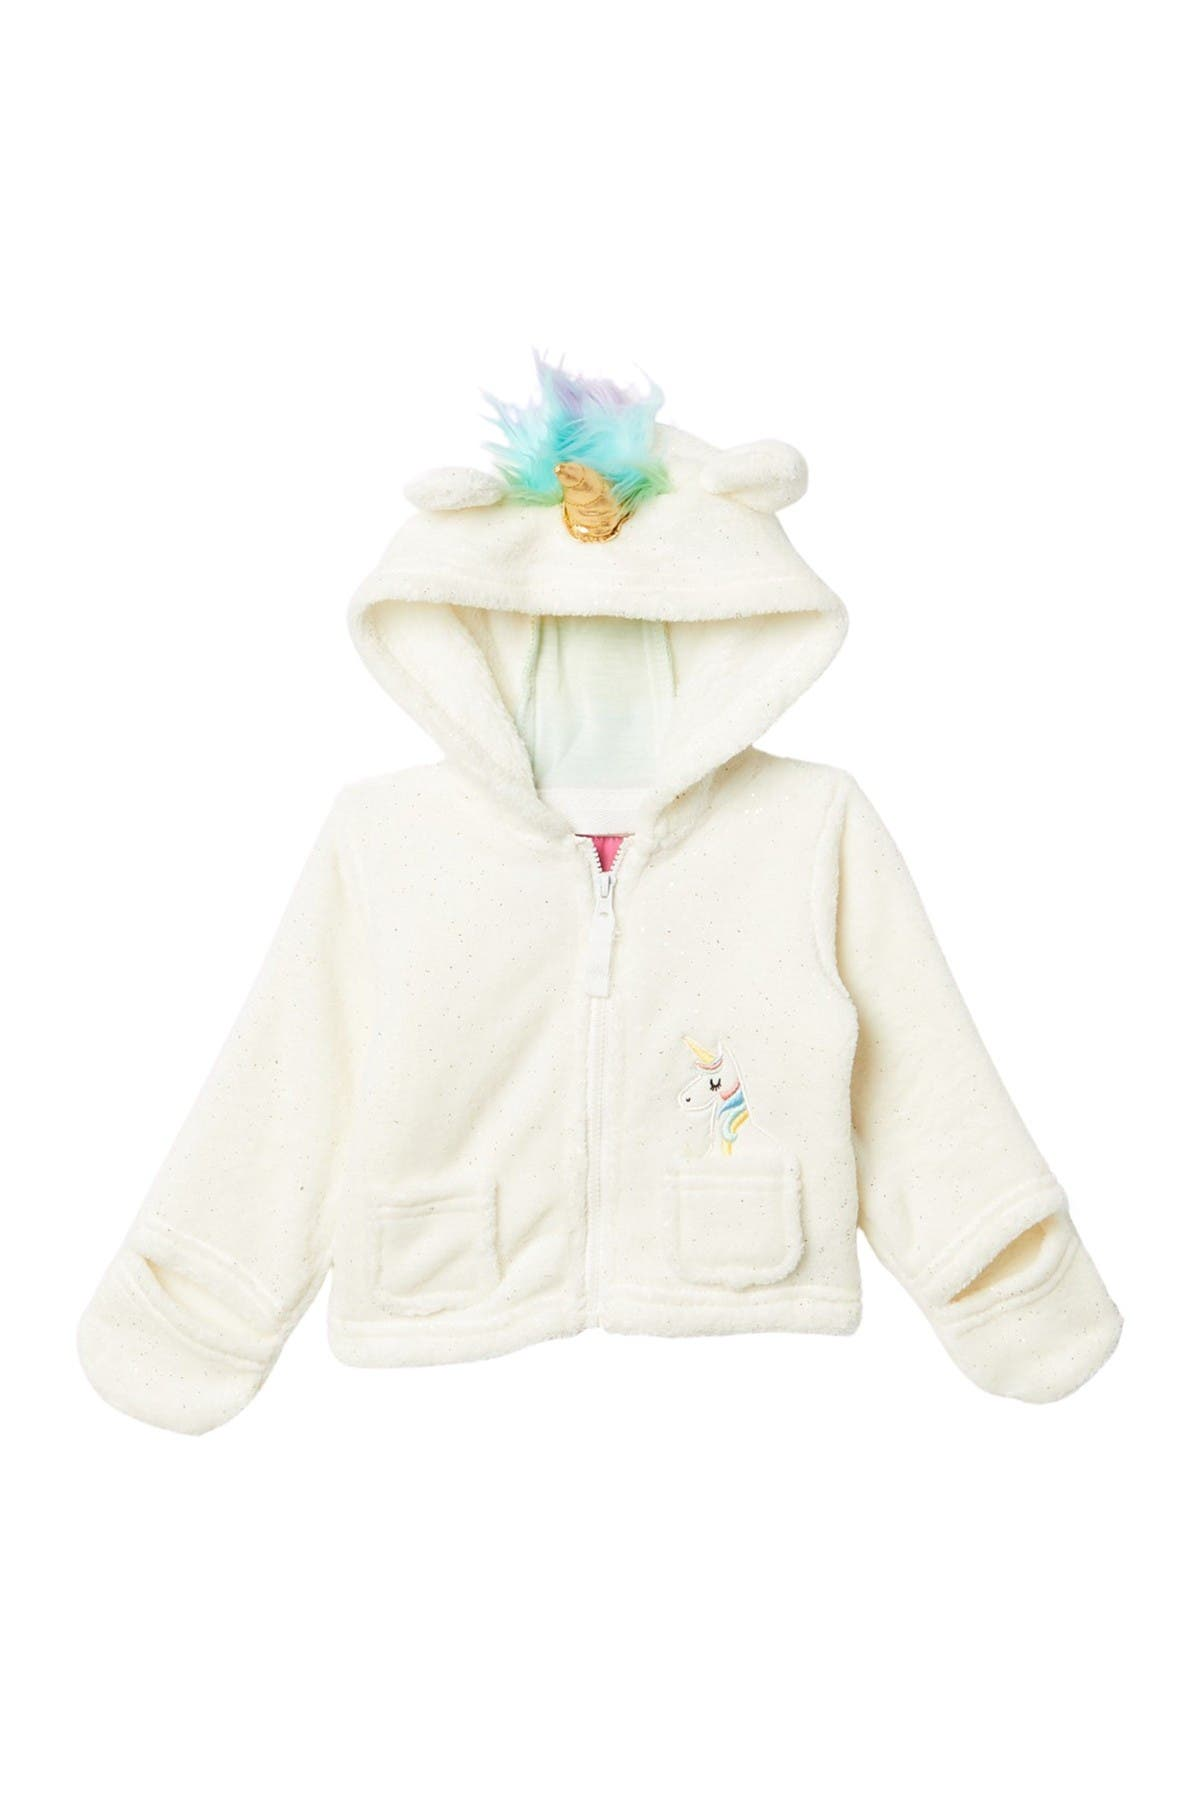 Image of Wippette Soft Faux Shearling Unicorn Jacket